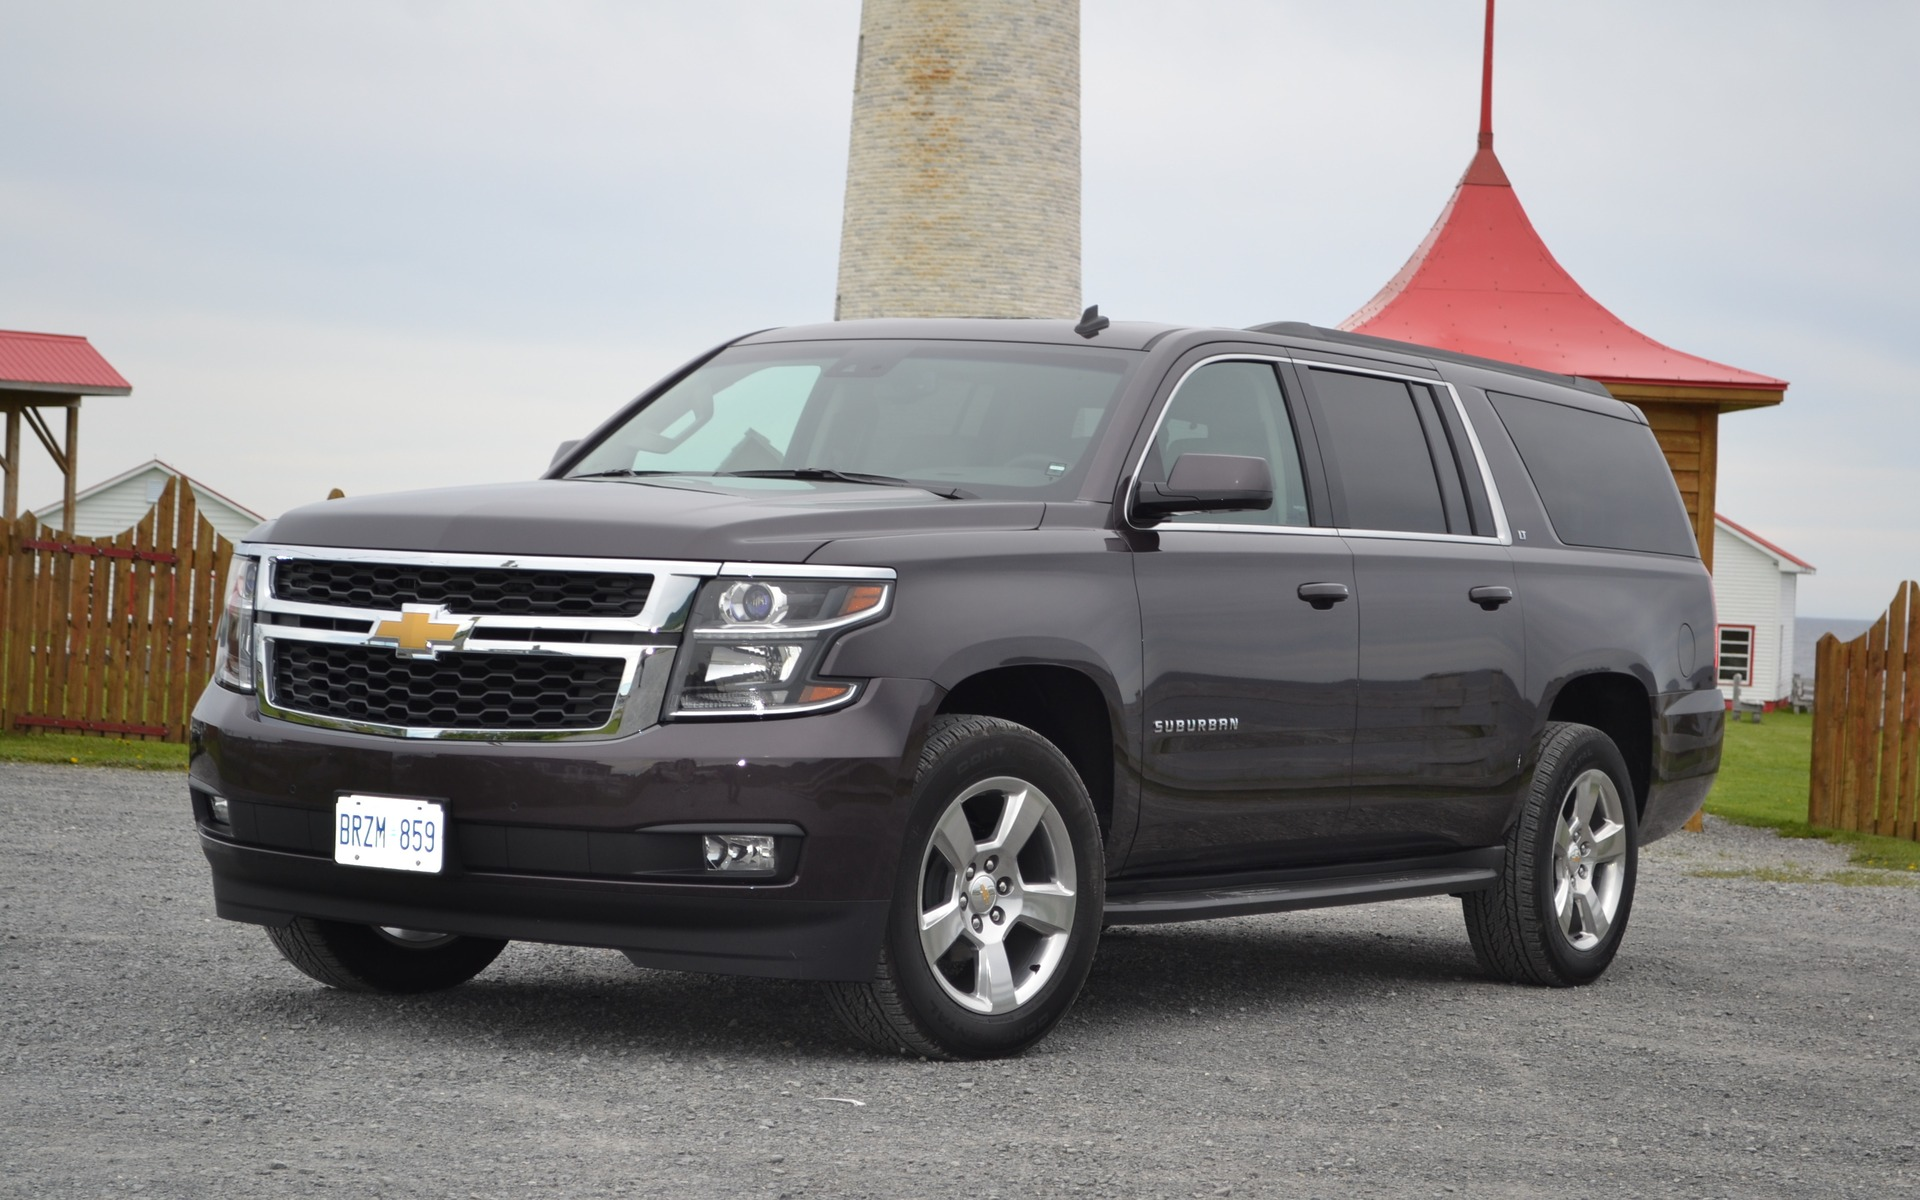 2016 Chevrolet Suburban News Reviews Picture Galleries And Engine Diagram Videos The Car Guide